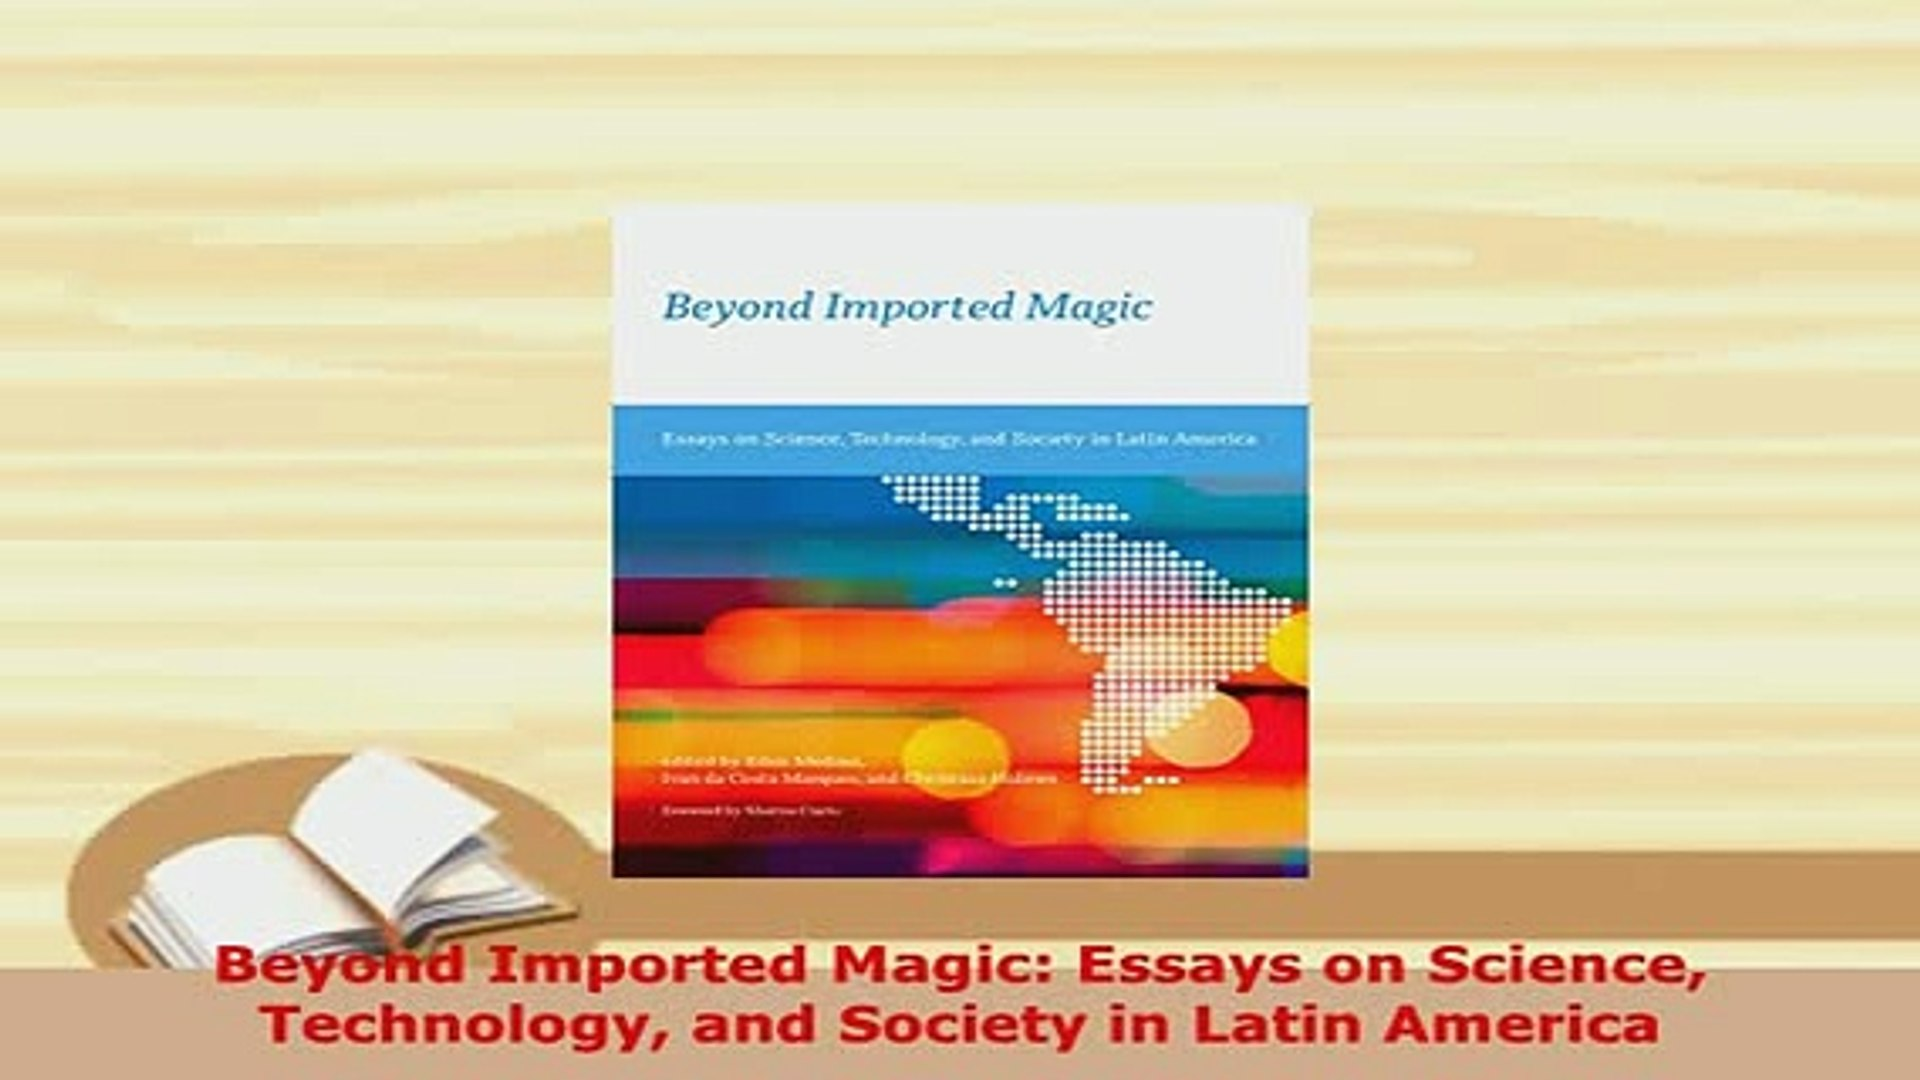 Dissertation Sample  Example Of English Essay also Concept Essay Pdf Beyond Imported Magic Essays On Science Technology And Society In Latin  America Read Full Ebook Dissertation Sample